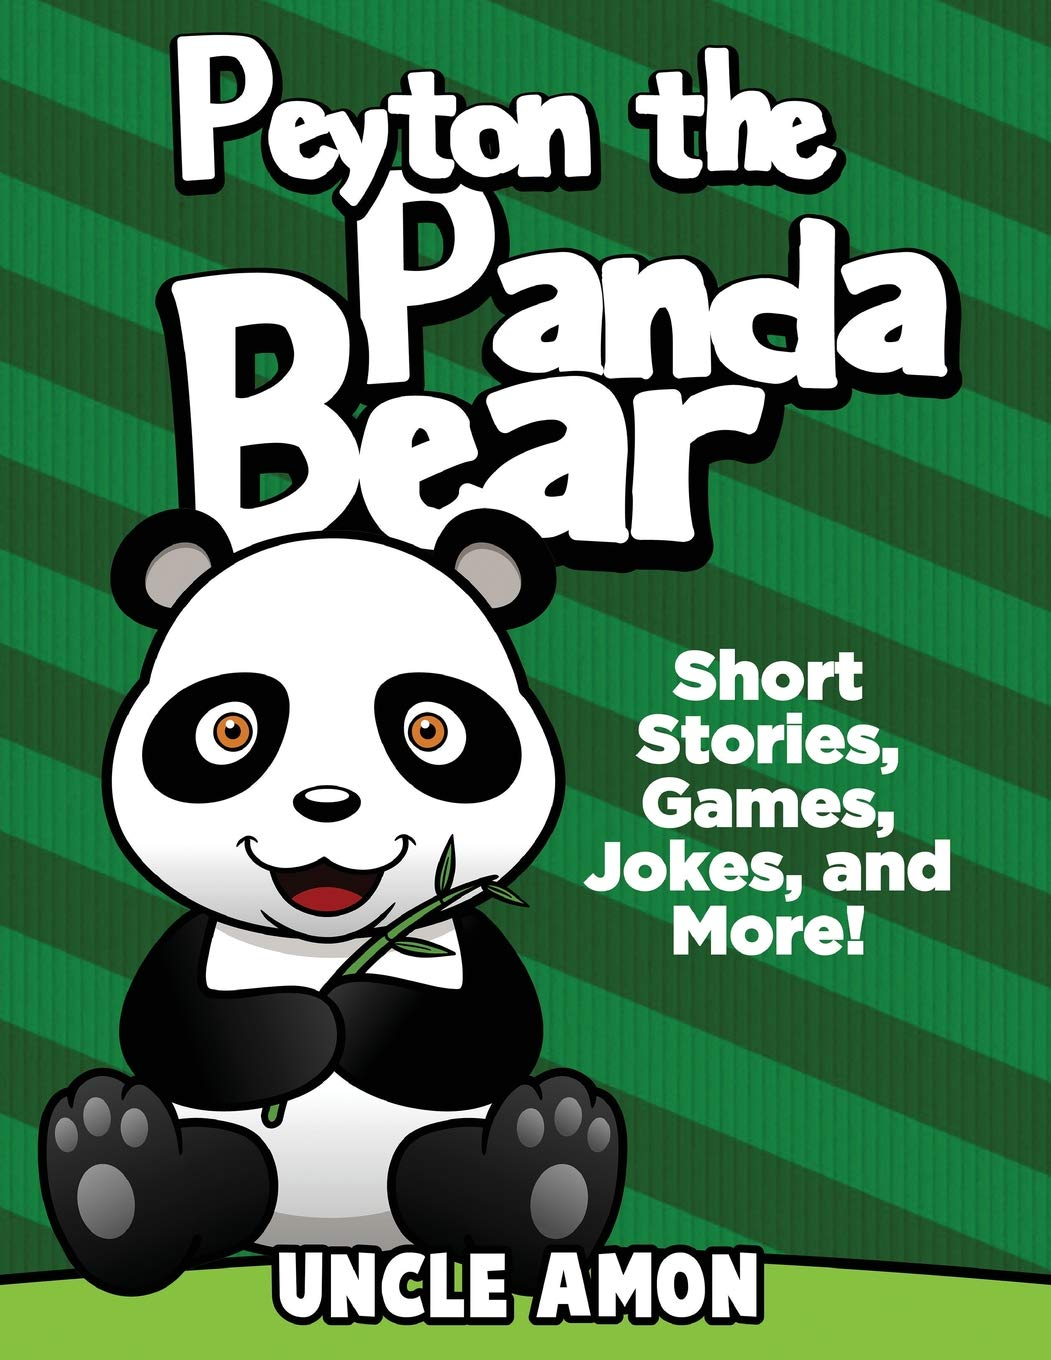 Peyton the Panda Bear: Short Stories, Games, Jokes, and More.